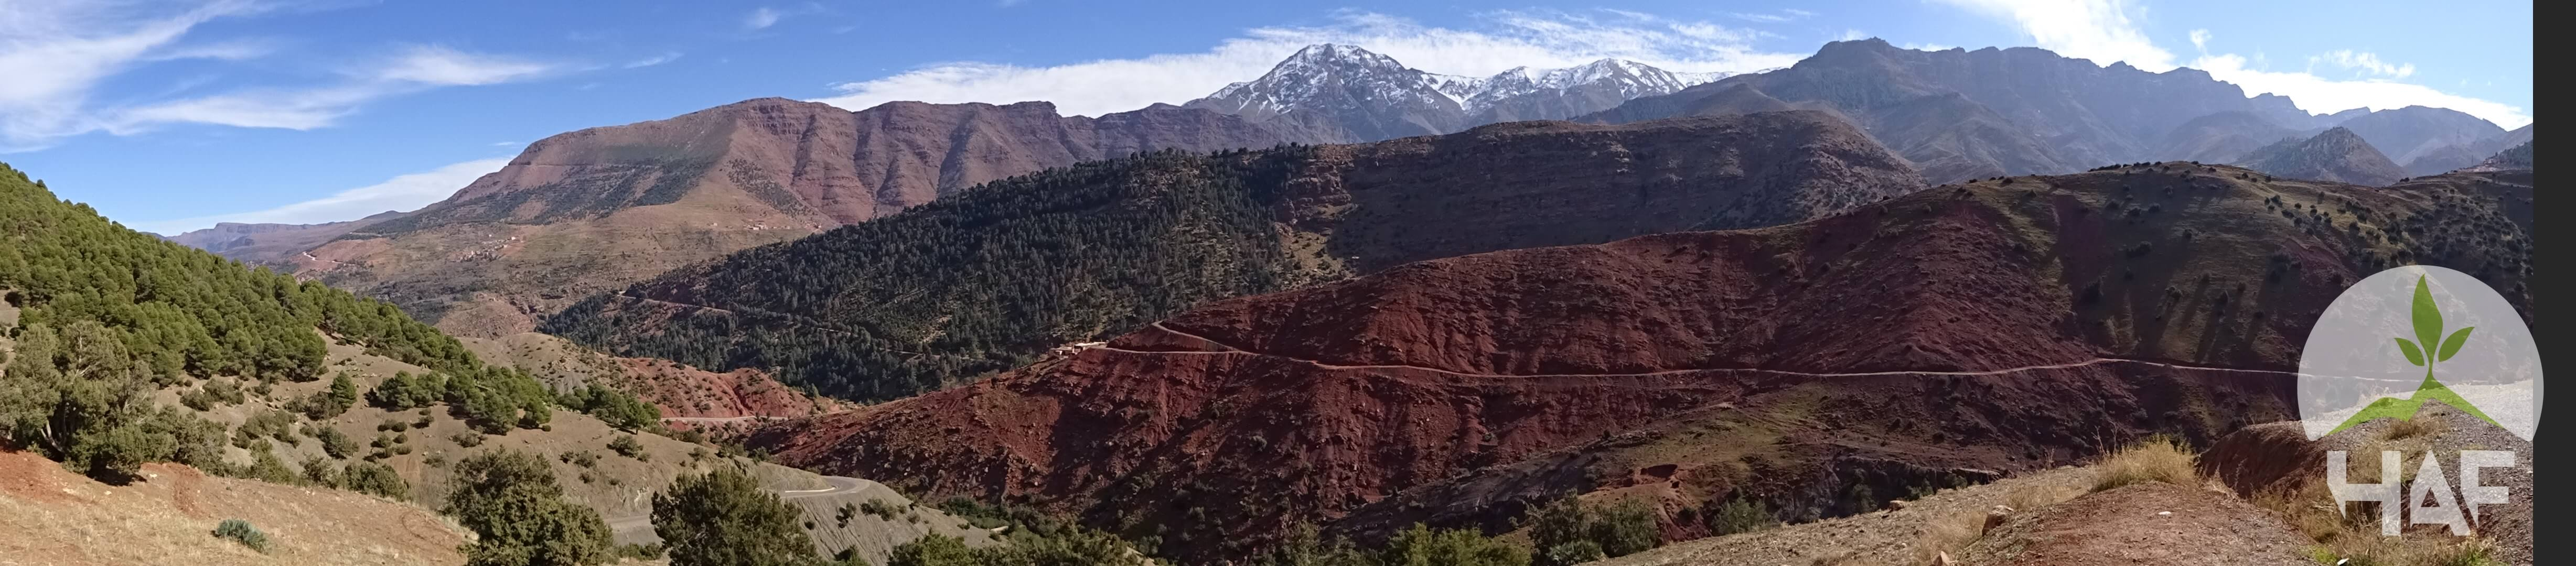 A PERSONAL JOURNEY WITH THE HIGH ATLAS FOUNDATION